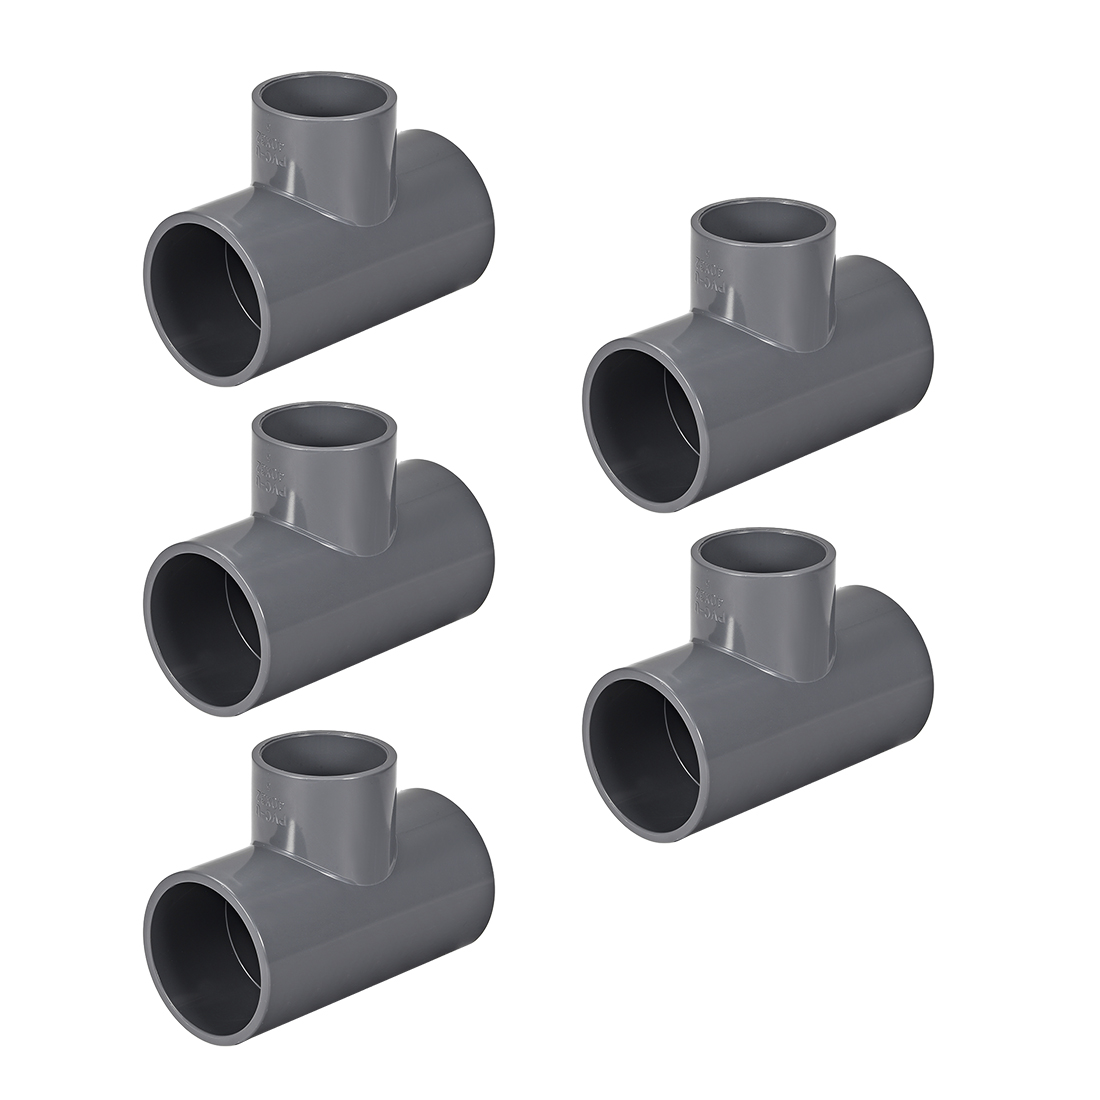 PVC Pipe Fitting Tee 401-Series Gray 1-1/2-inch X 1-1/4-inch Socket 5pcs